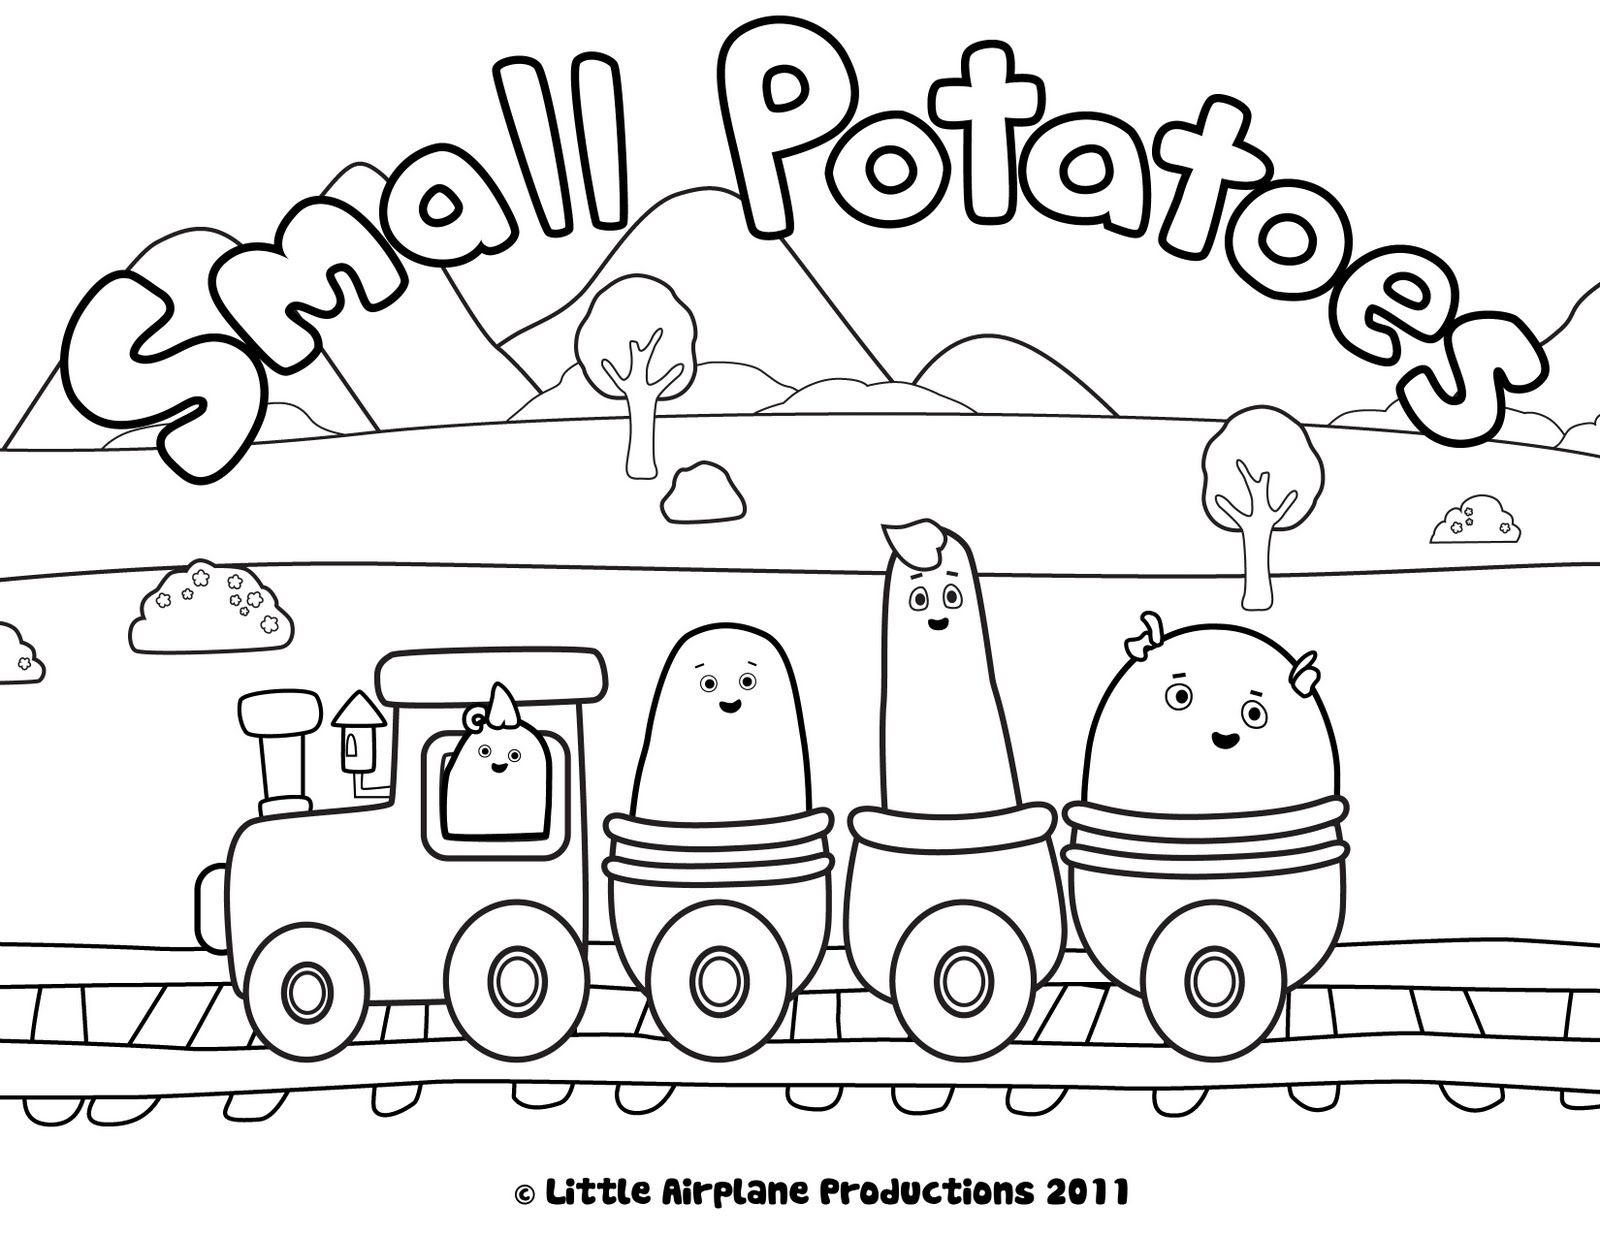 Small Potatoes Coloring Pages Coloring Pages Baseball Coloring